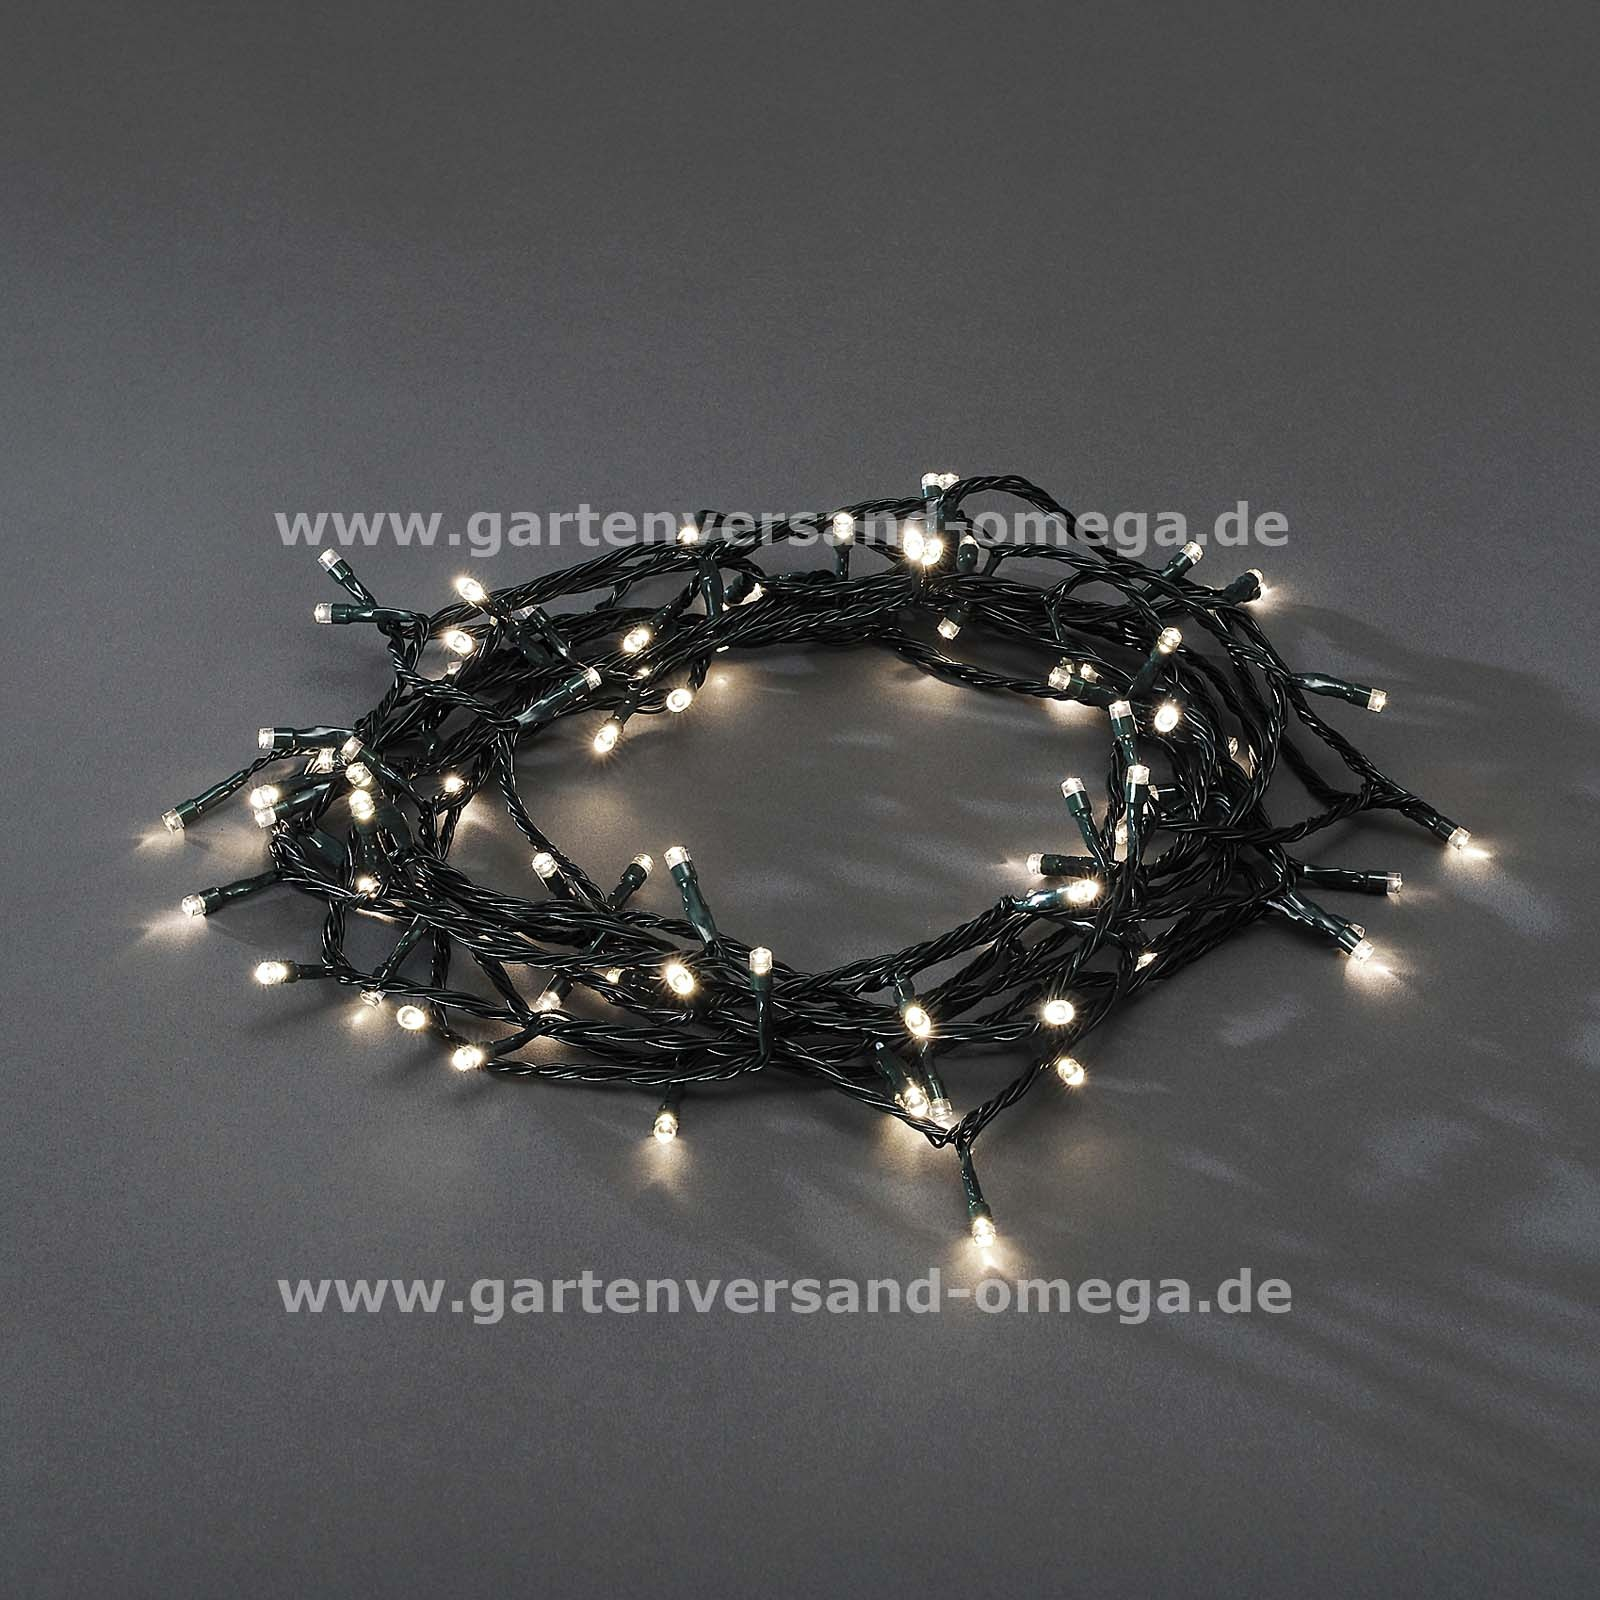 solarlichterkette led solar au enbeleuchtung f r weihnachten solarbetriebene. Black Bedroom Furniture Sets. Home Design Ideas